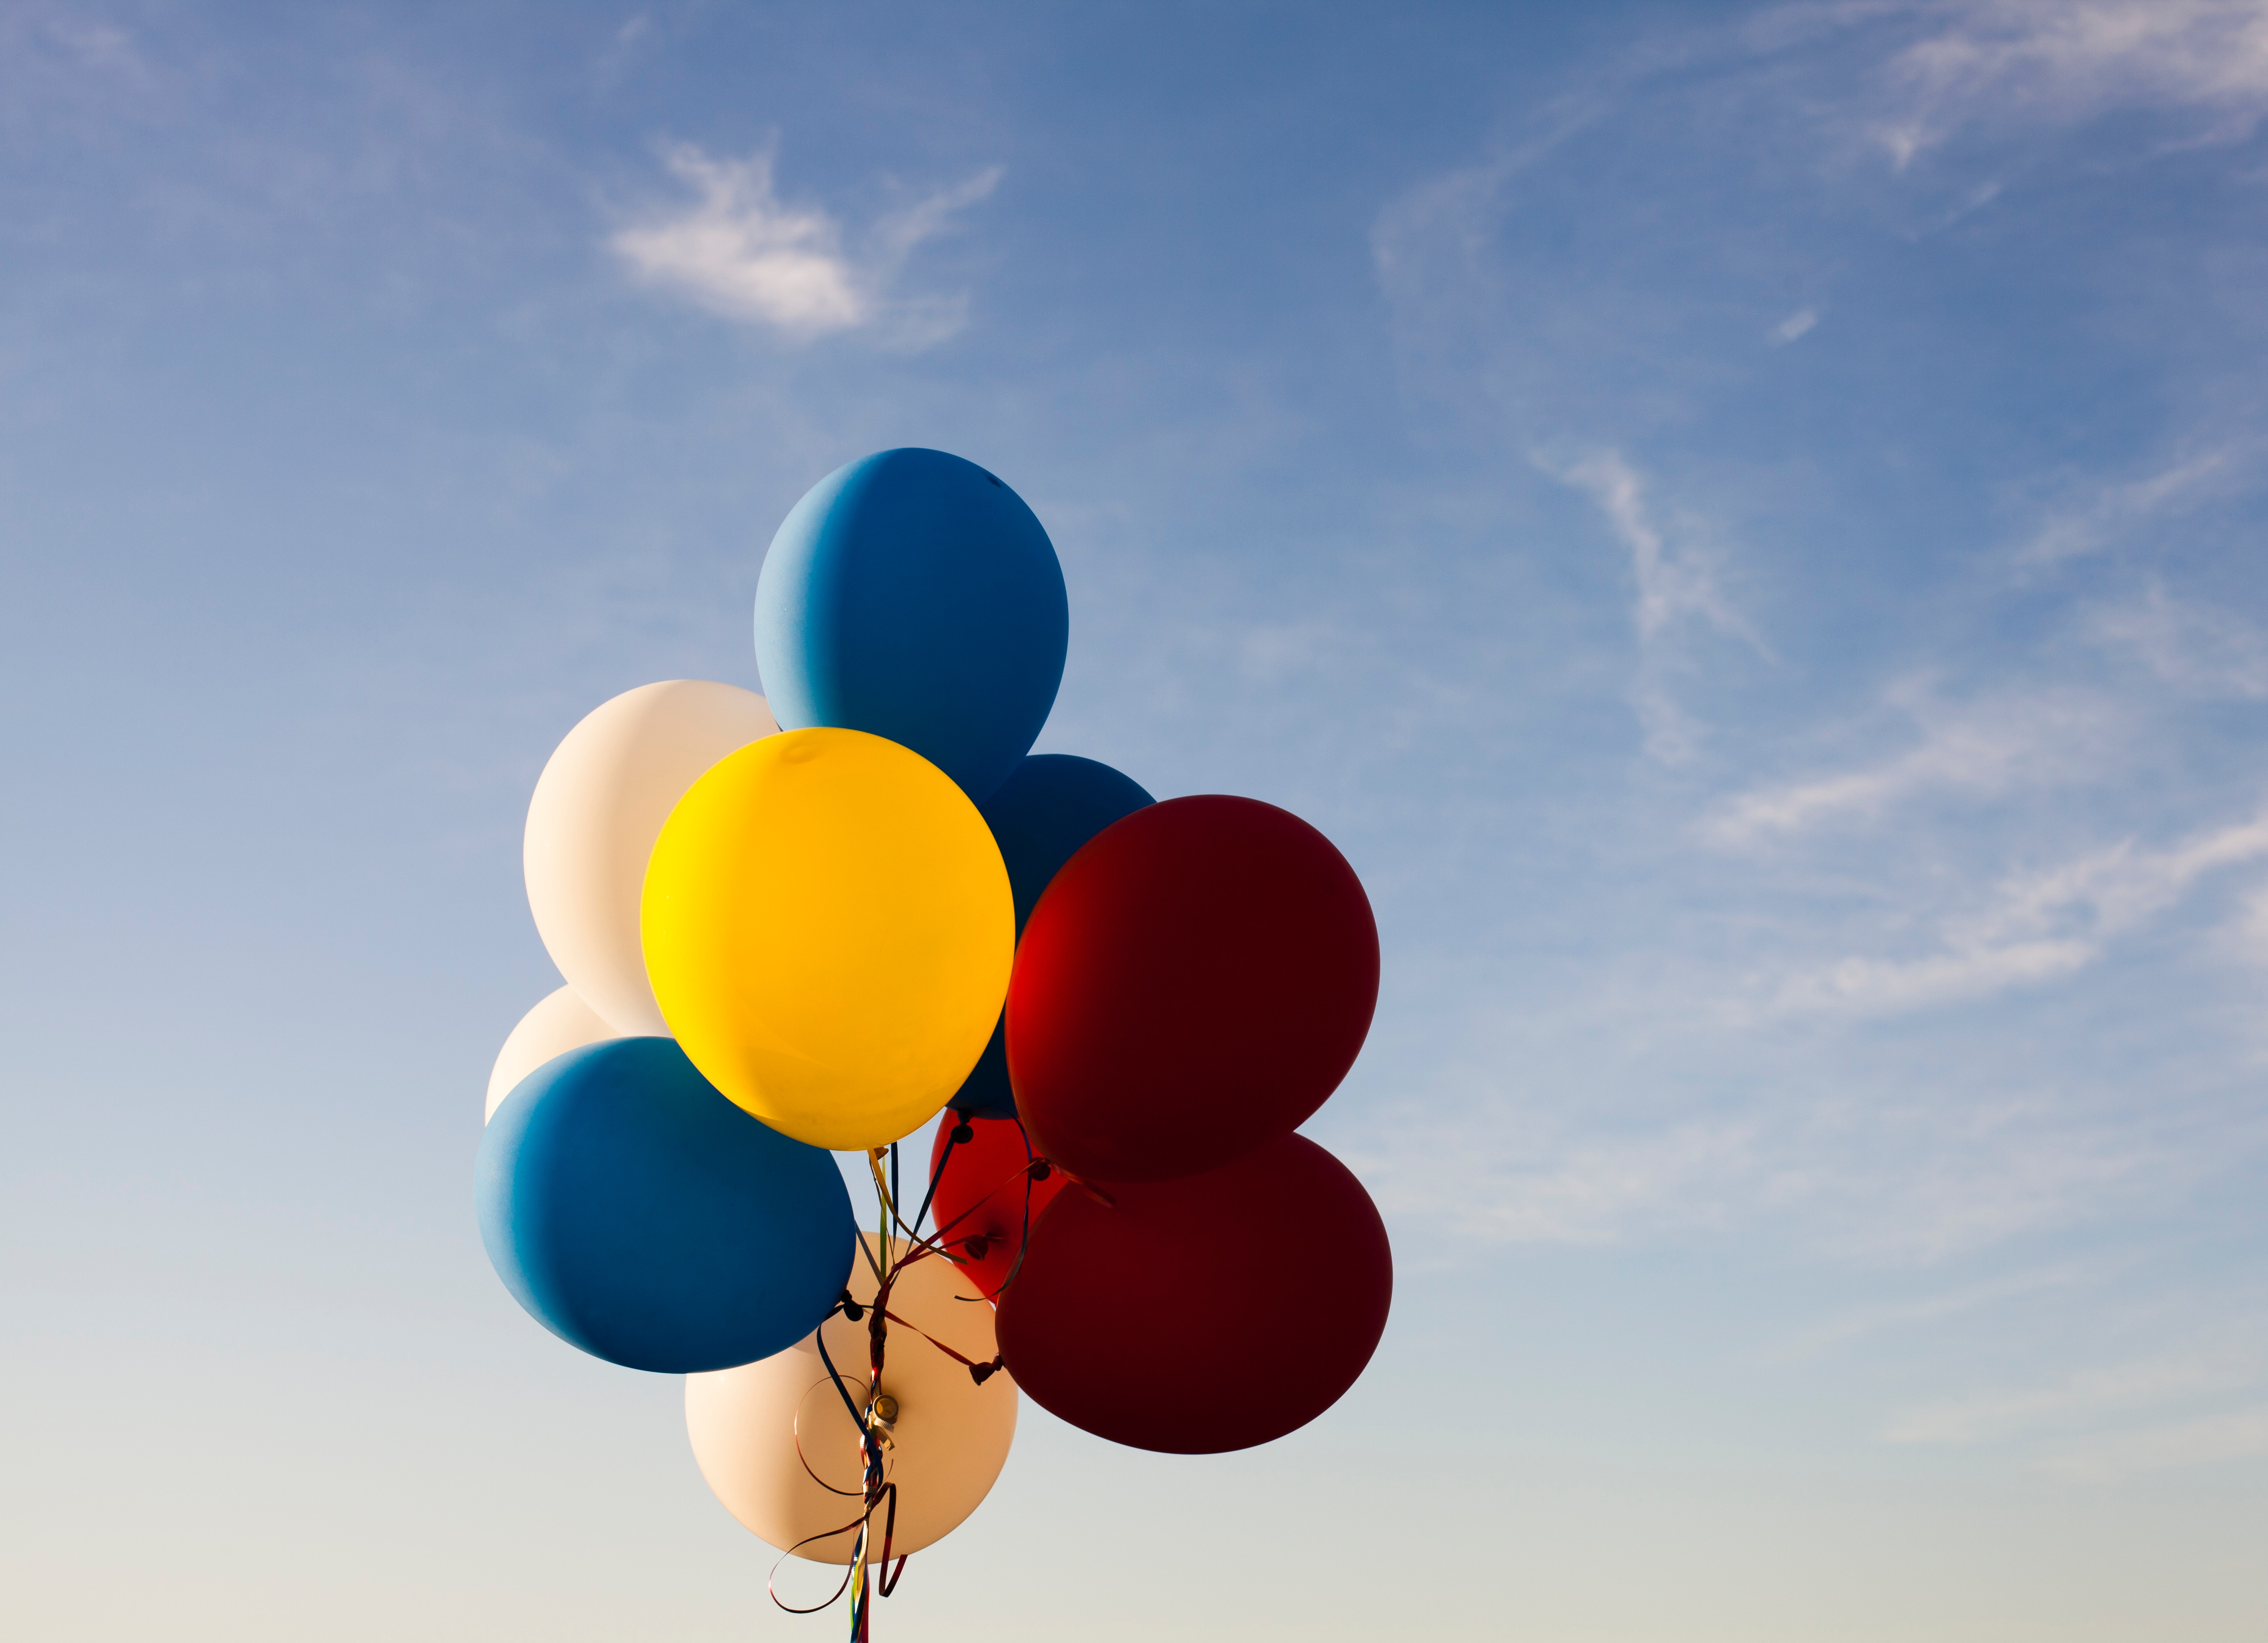 A bunch of balloons against a blue sky.